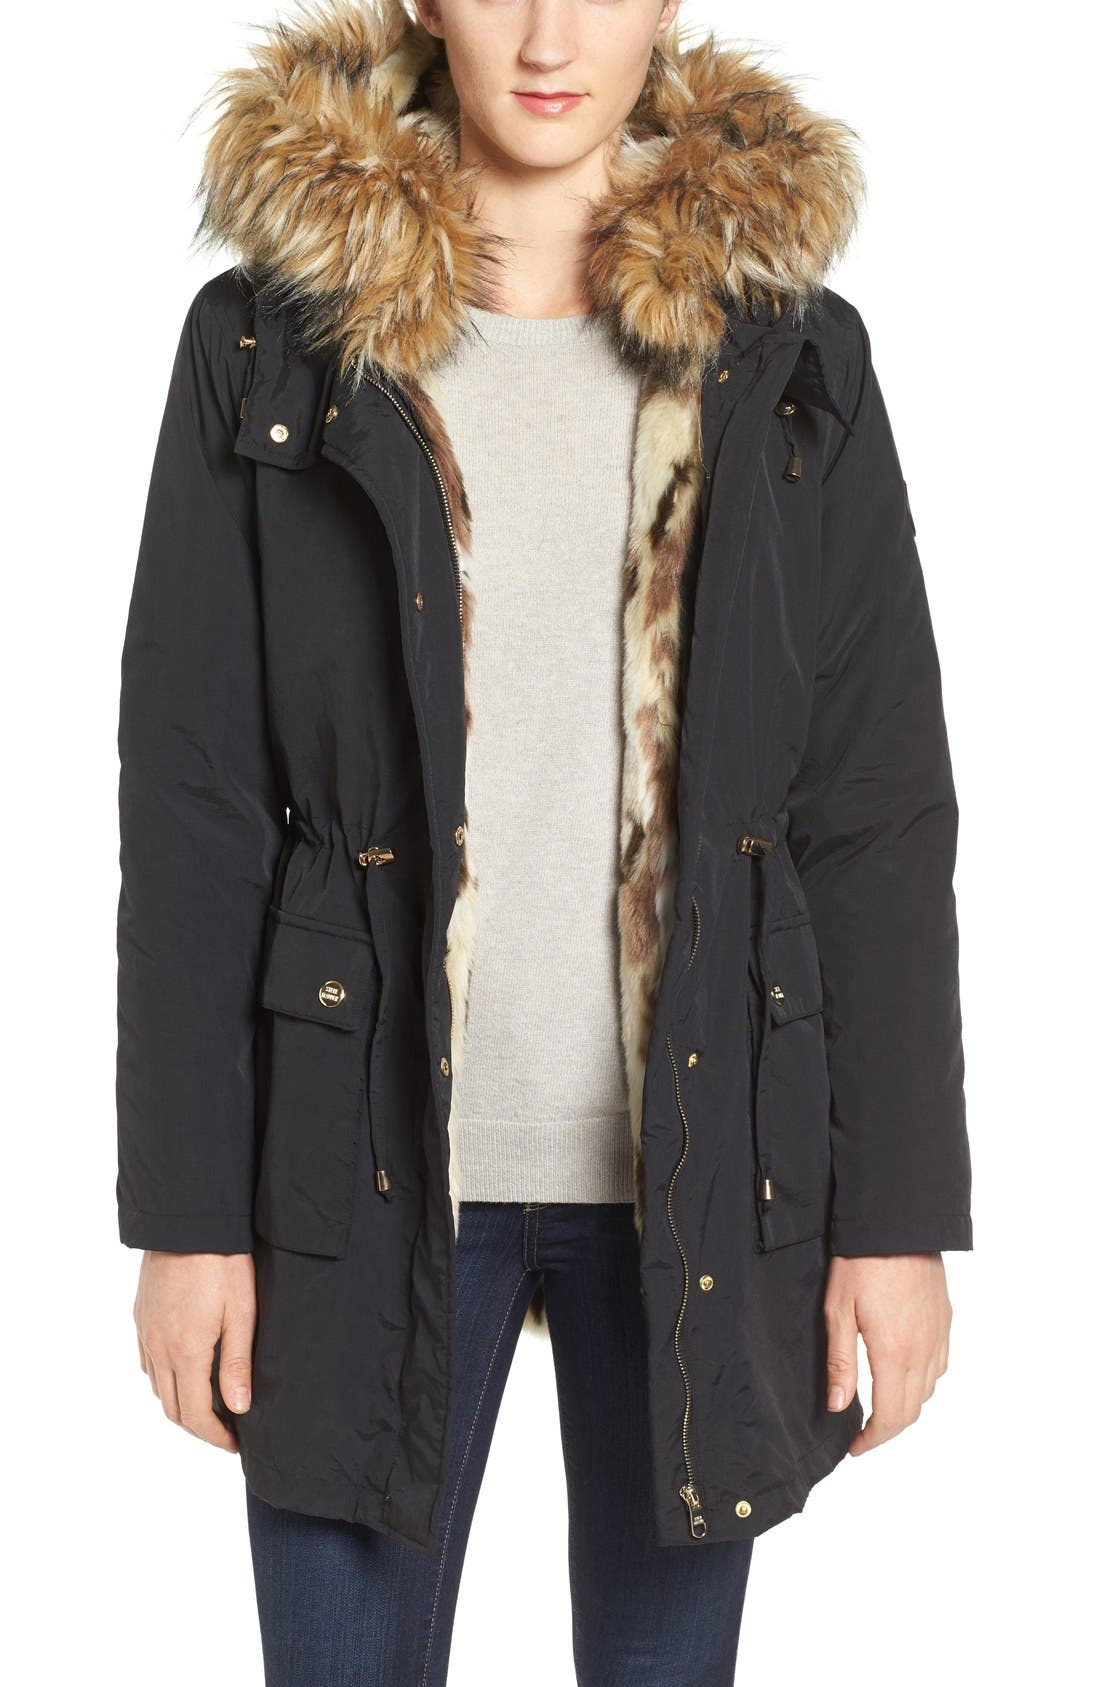 Main Image - Steve Madden 'Taslon' Parka with Faux-Fur Trim Hood